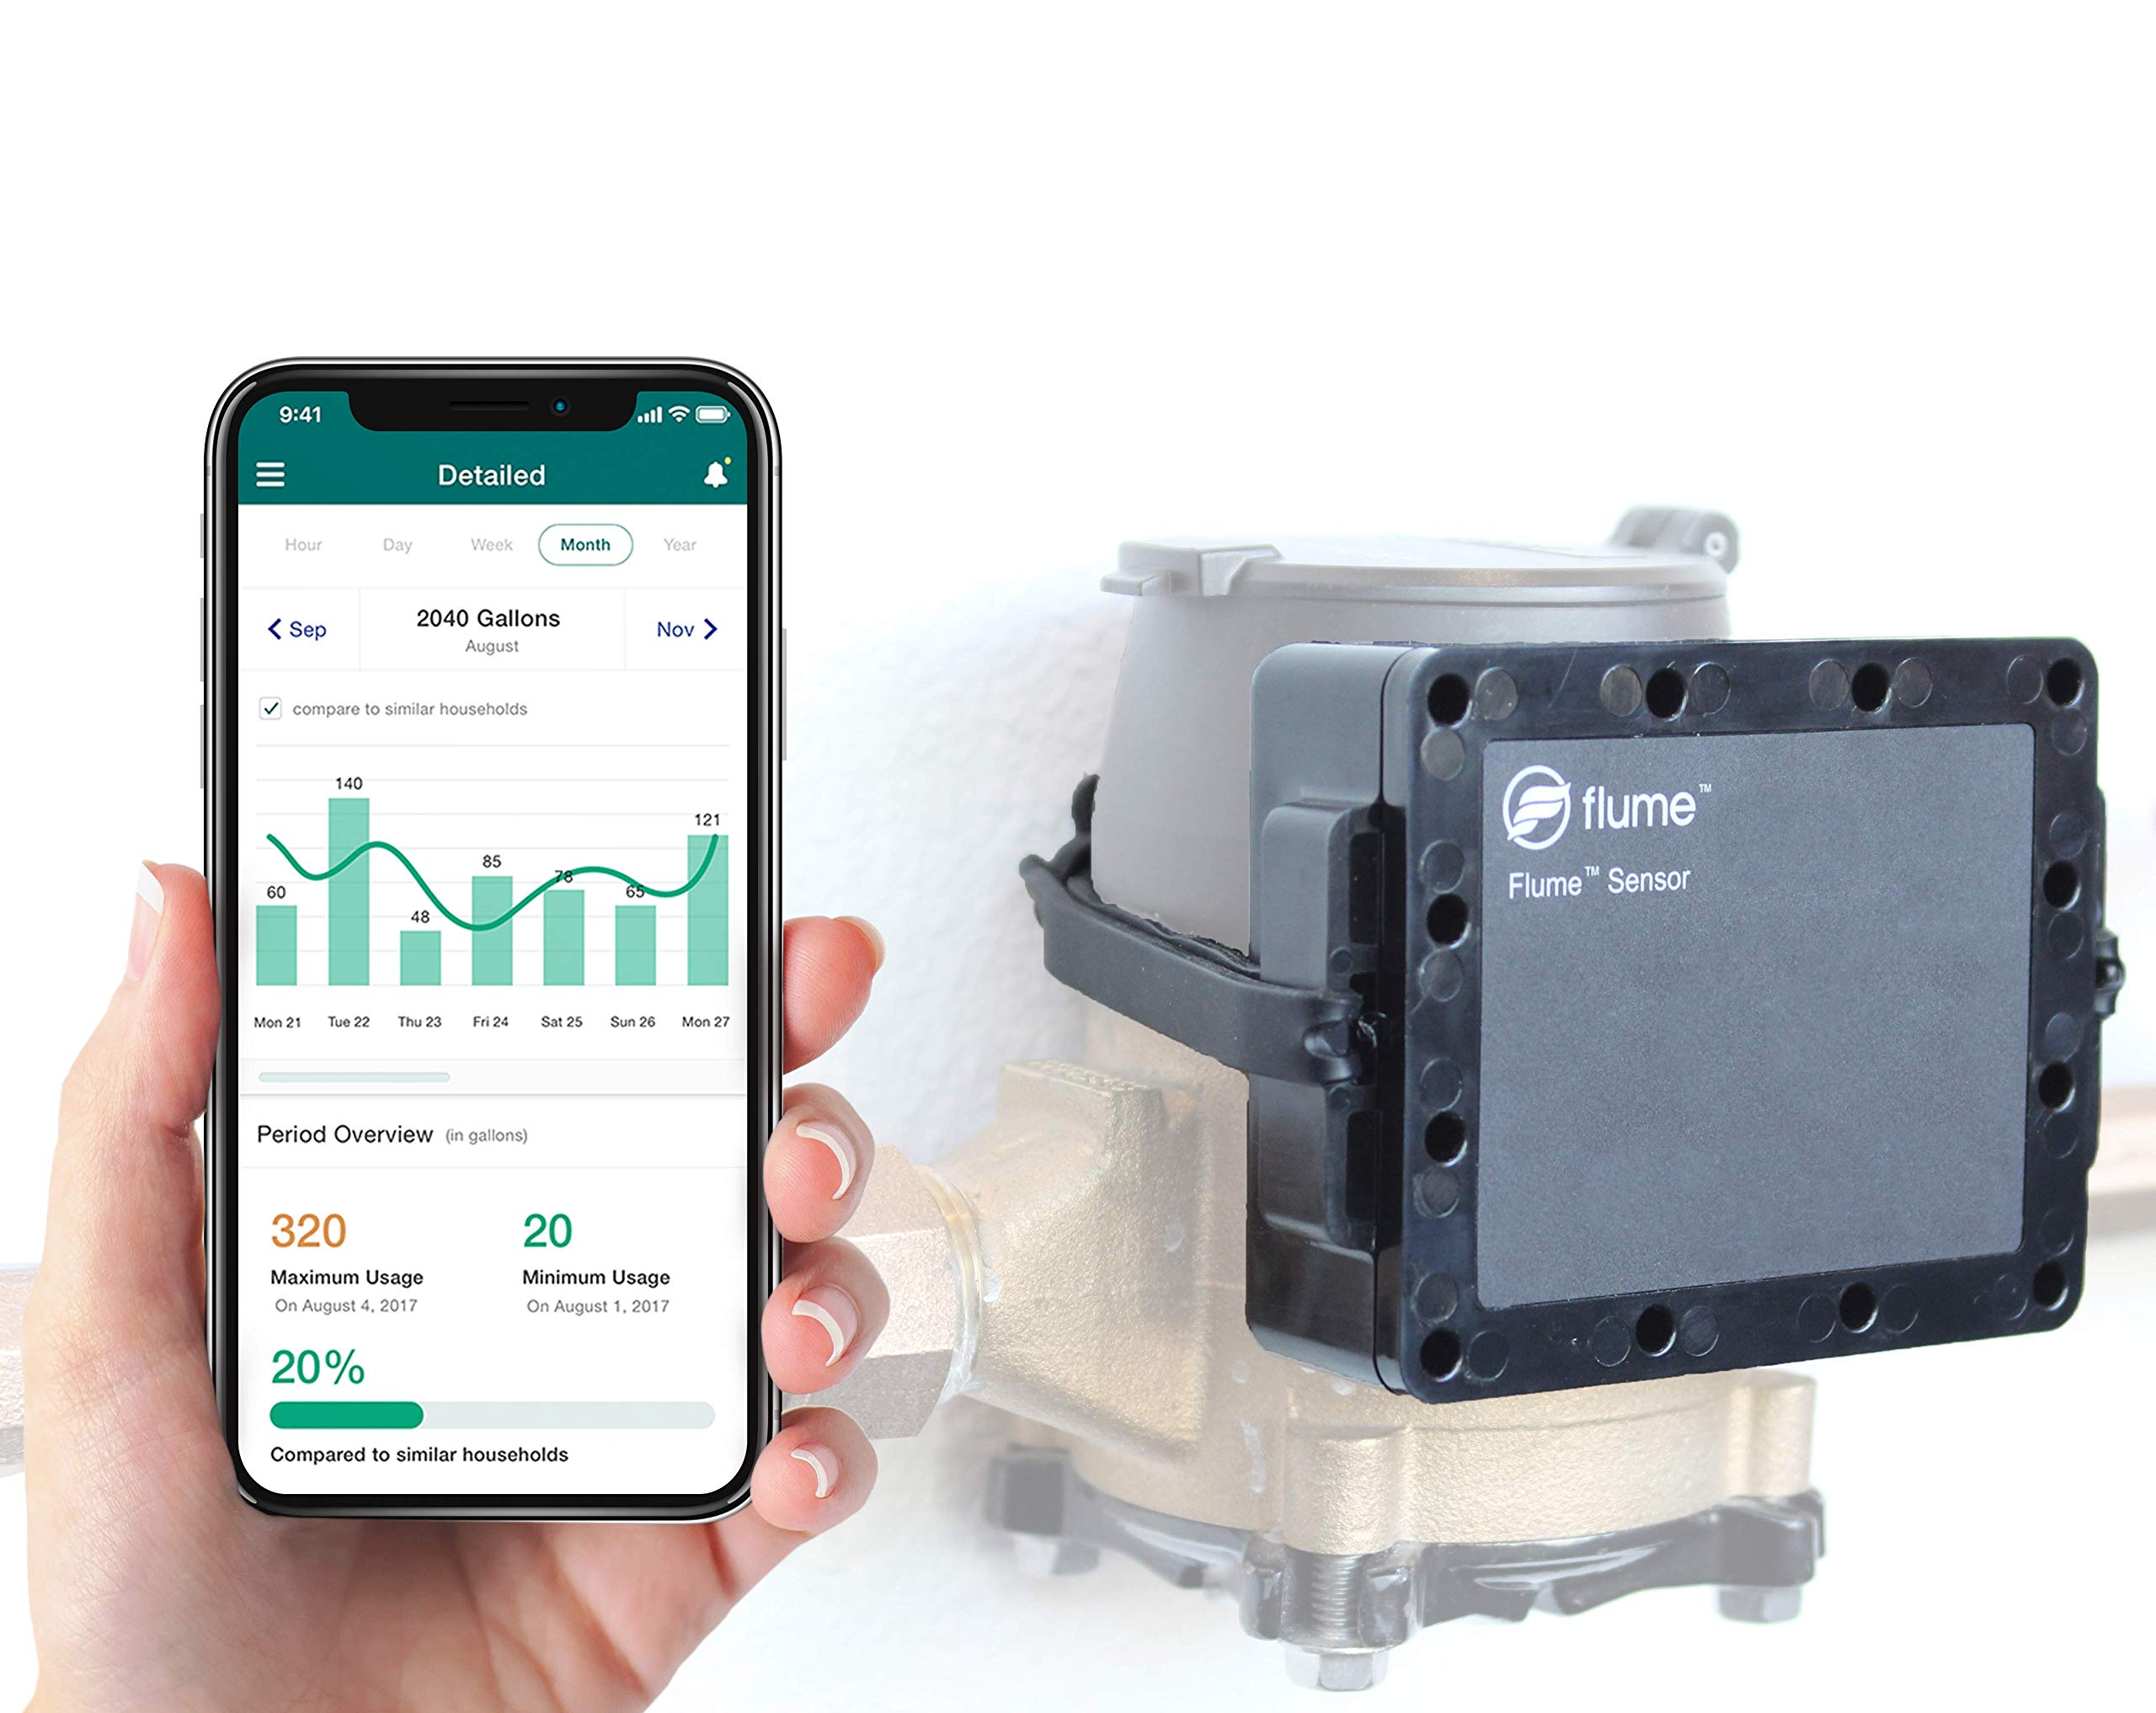 Flume Smart Home Water Sensor - Monitors Water Usage and Lawn Sprinklers - Leak Detector - No Pipe Cutting, Easy Install, WiFi